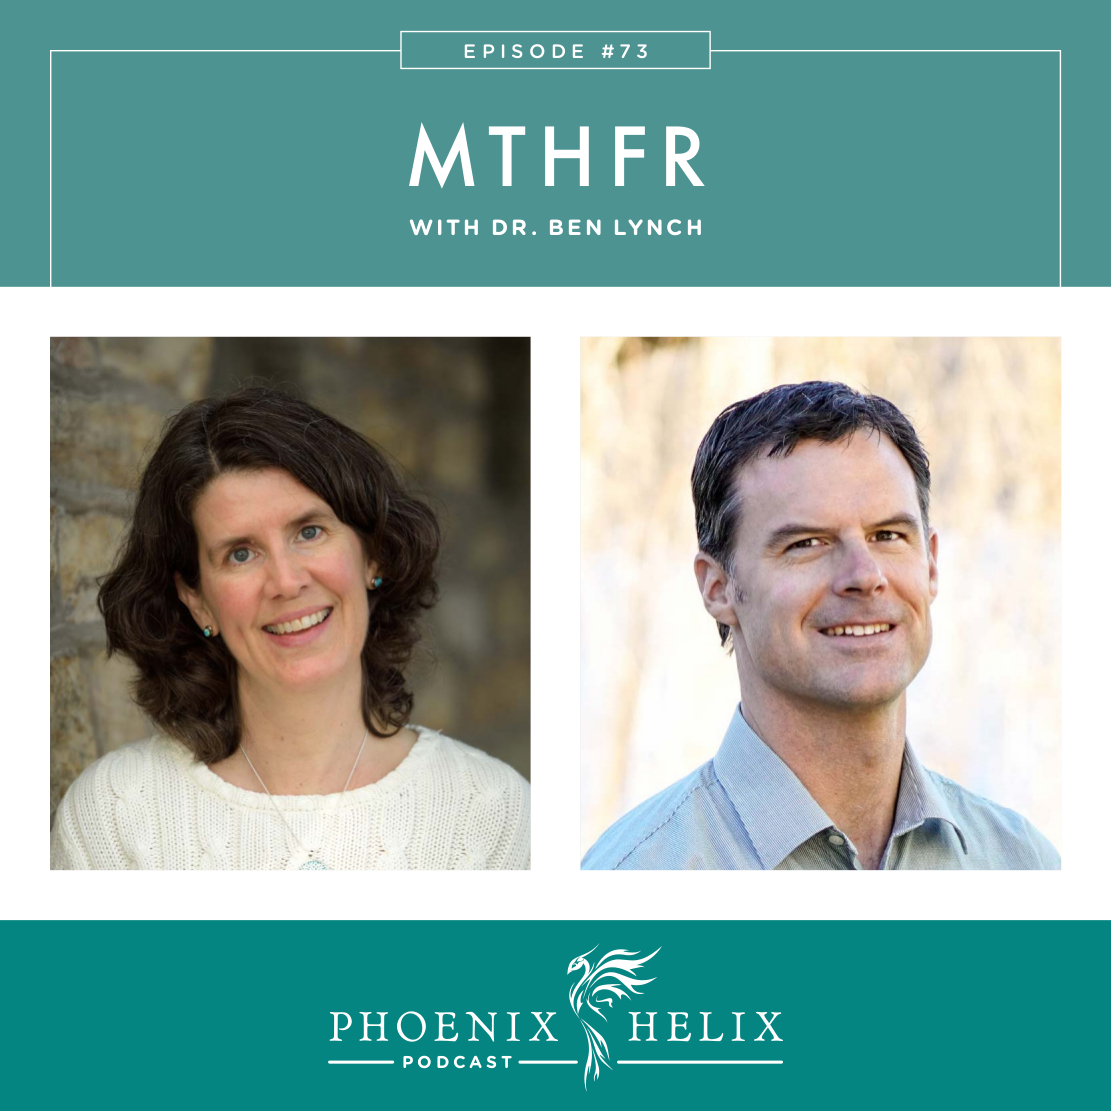 Best of the Phoenix Helix Podcast: MTHFR with Dr. Ben Lynch